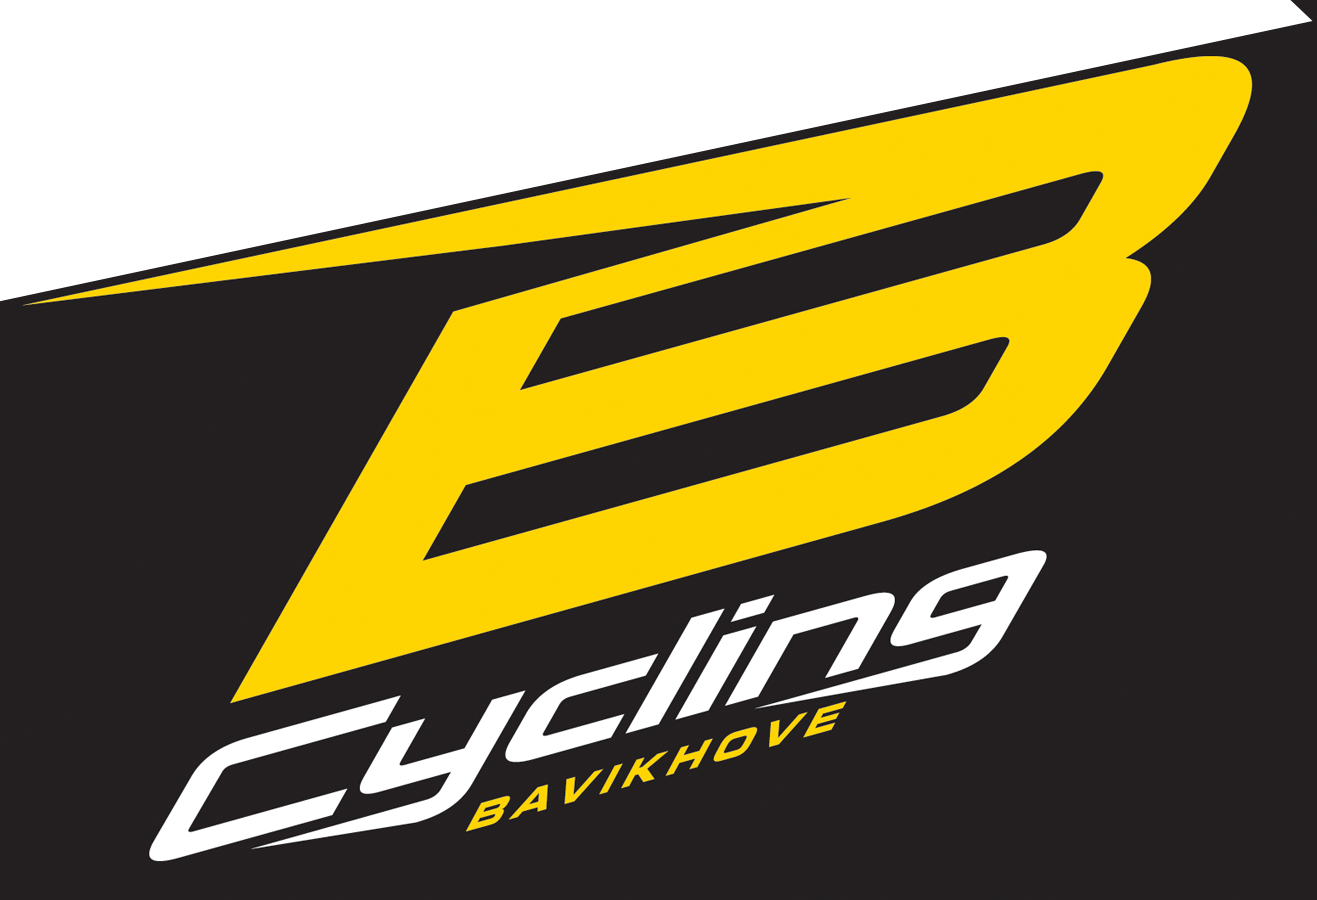 B-Cycling Bavikhove